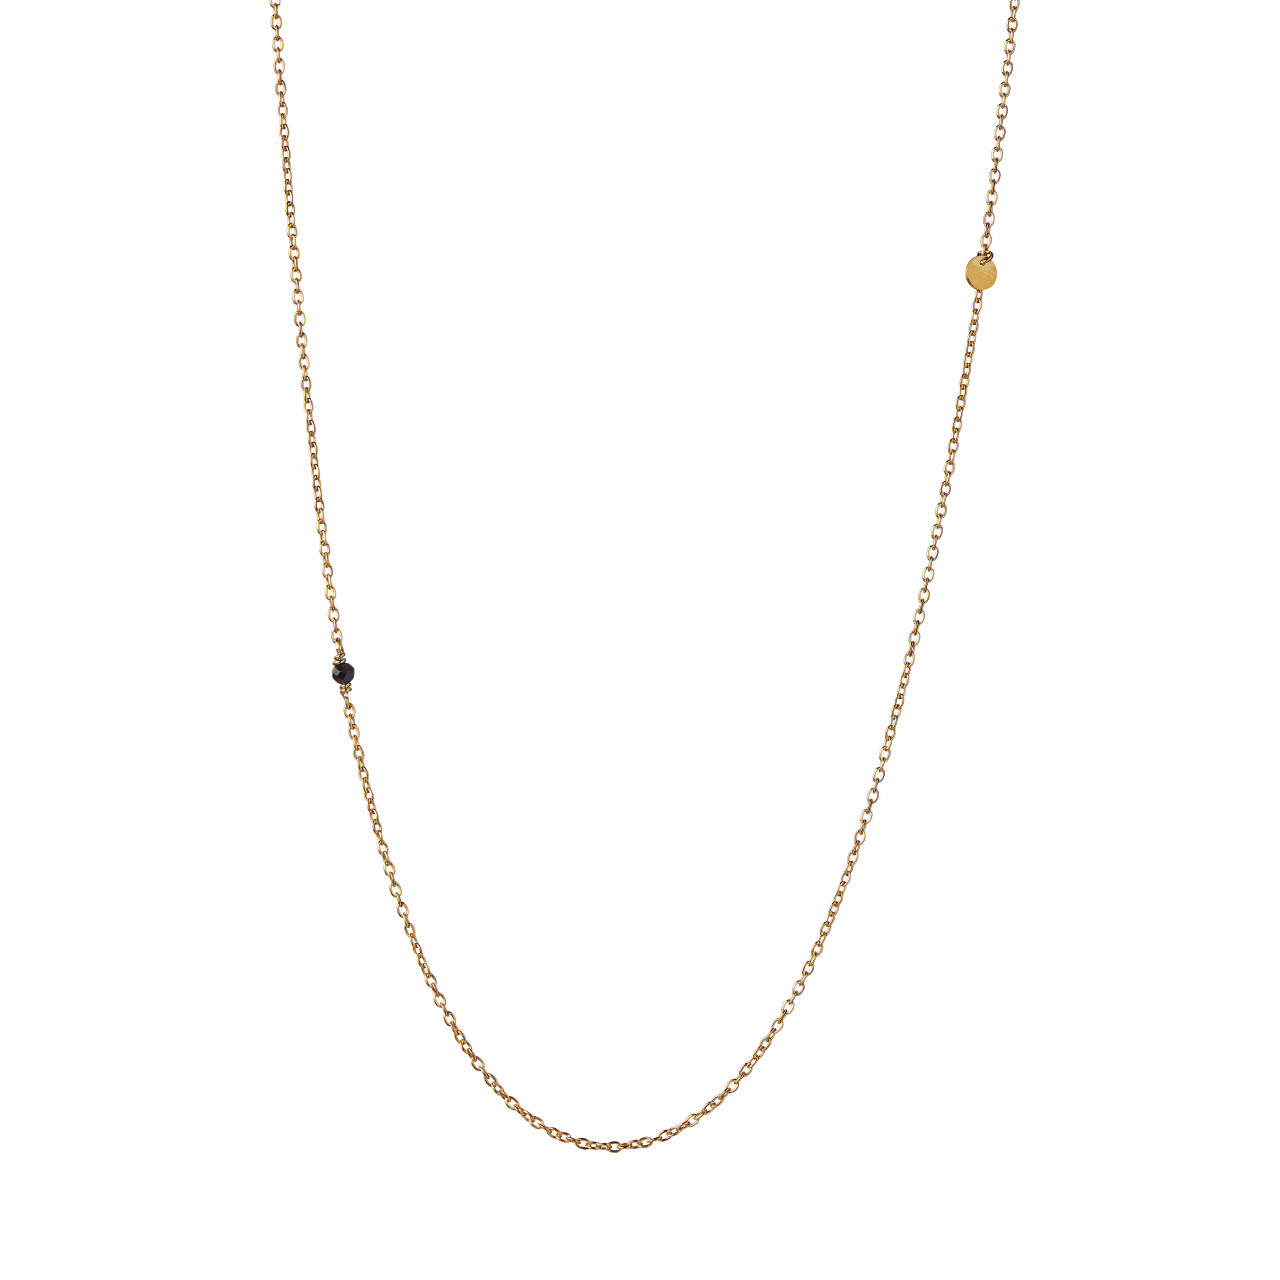 Pendant Chain With Petit Coin And Black Spinel Necklace